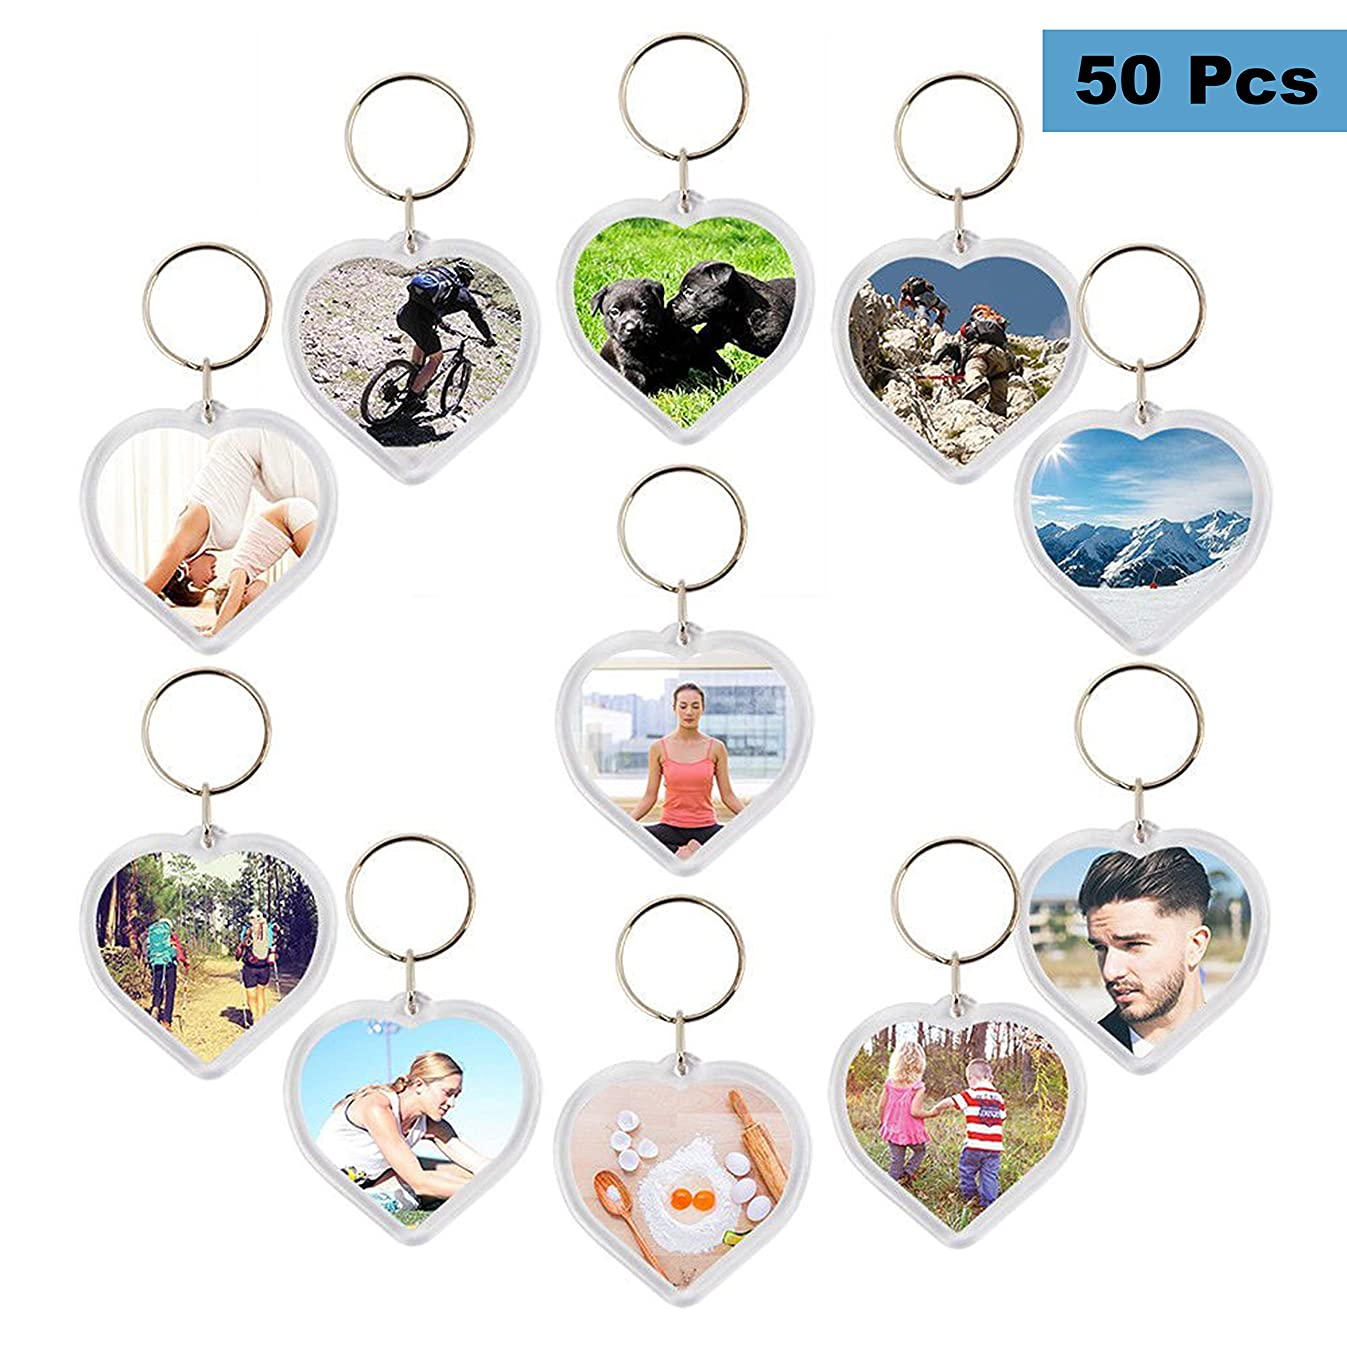 Photo Keychain (50 pcs) - Heart Shaped Acrylic Clear Blank Keyring with Photo Insert - DIY Birthday Wedding Favour Keyring Gifts Acrylic Plastic Photo Blank Snap In Keychains Personalized Picture